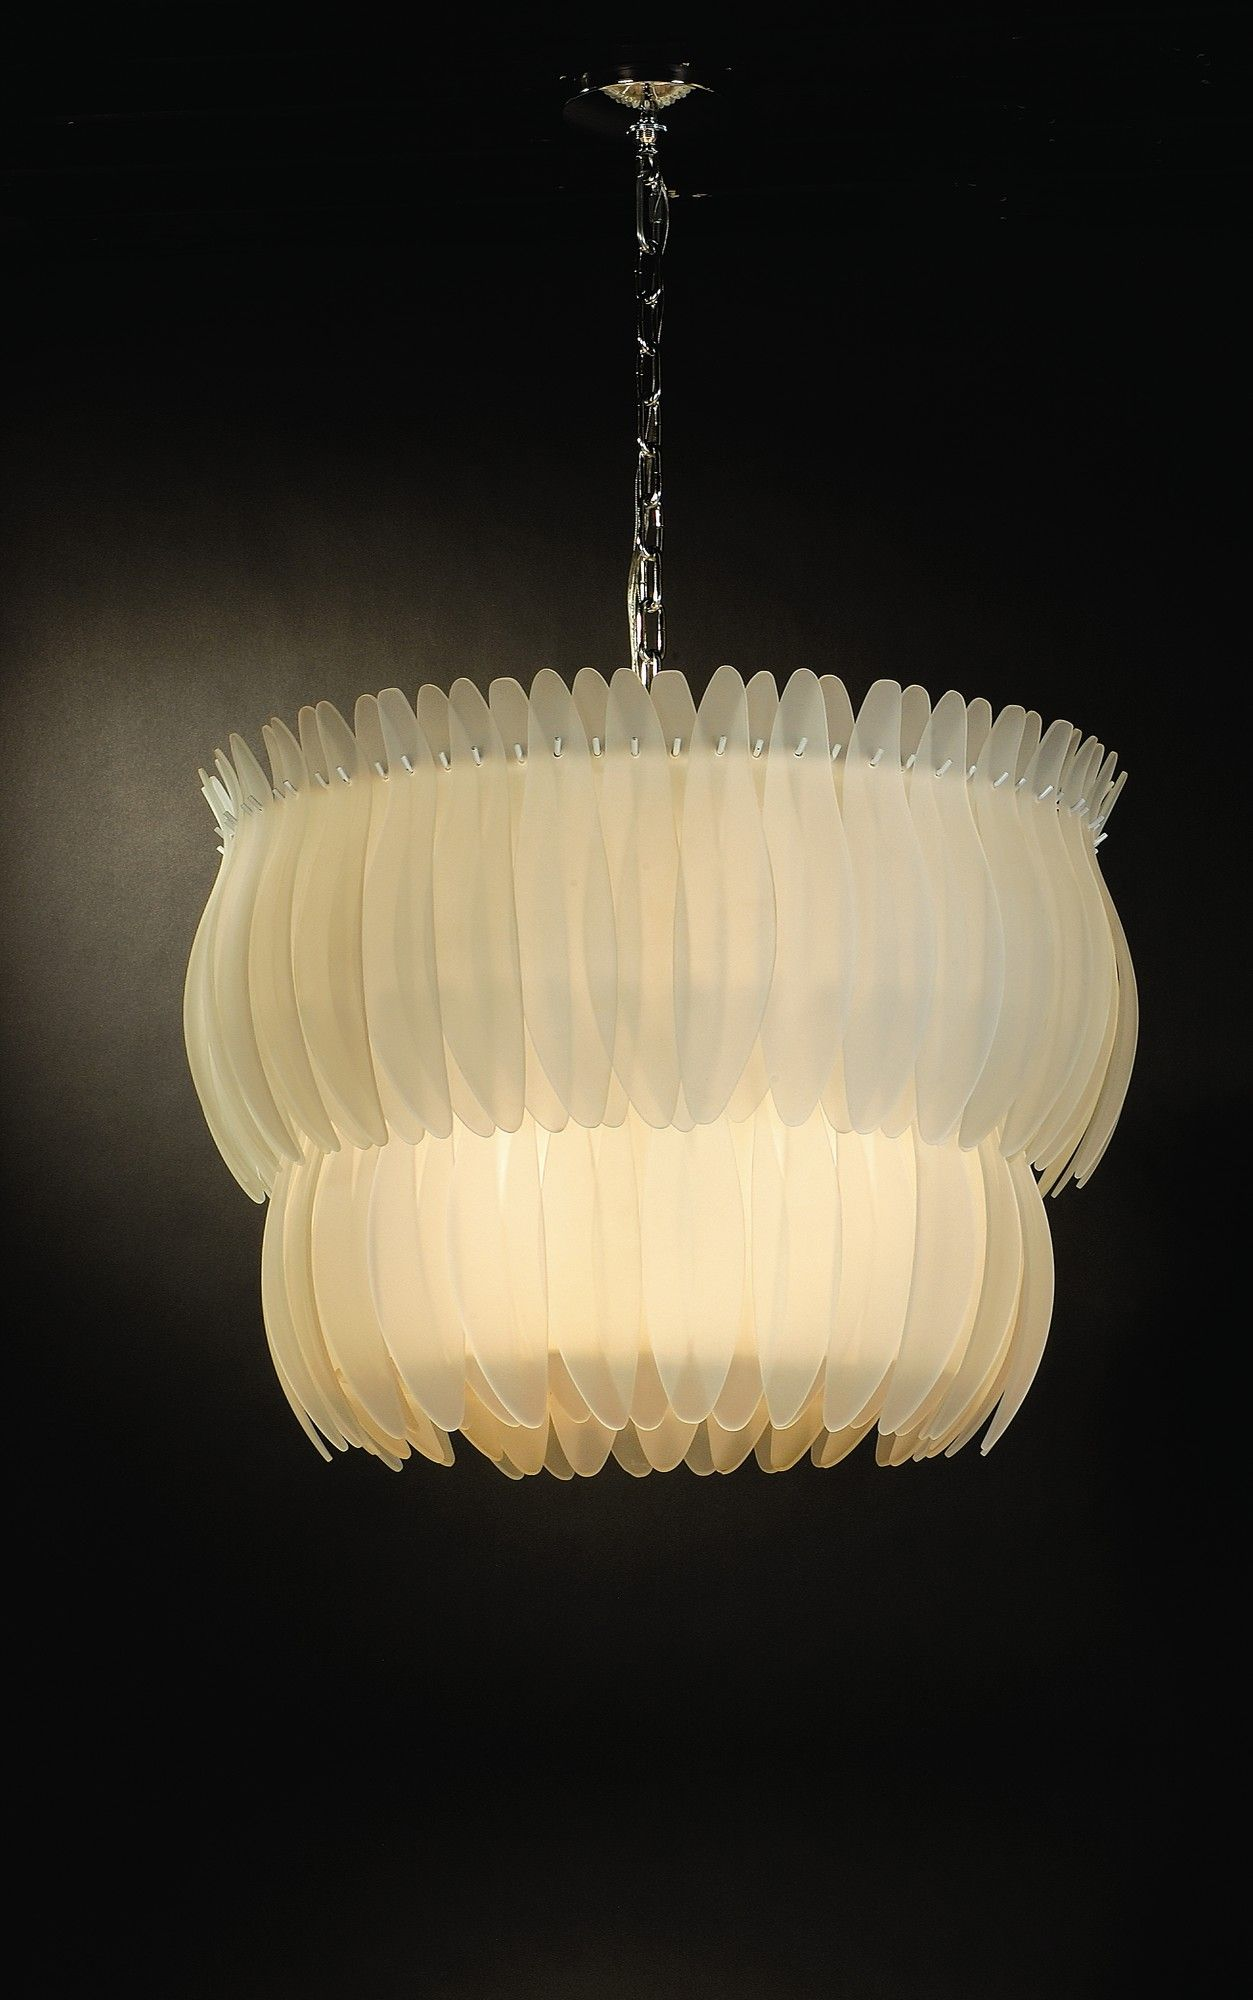 Trend lighting corp aphrodite chandelier lighting pinterest trend lighting corp aphrodite chandelier aloadofball Image collections